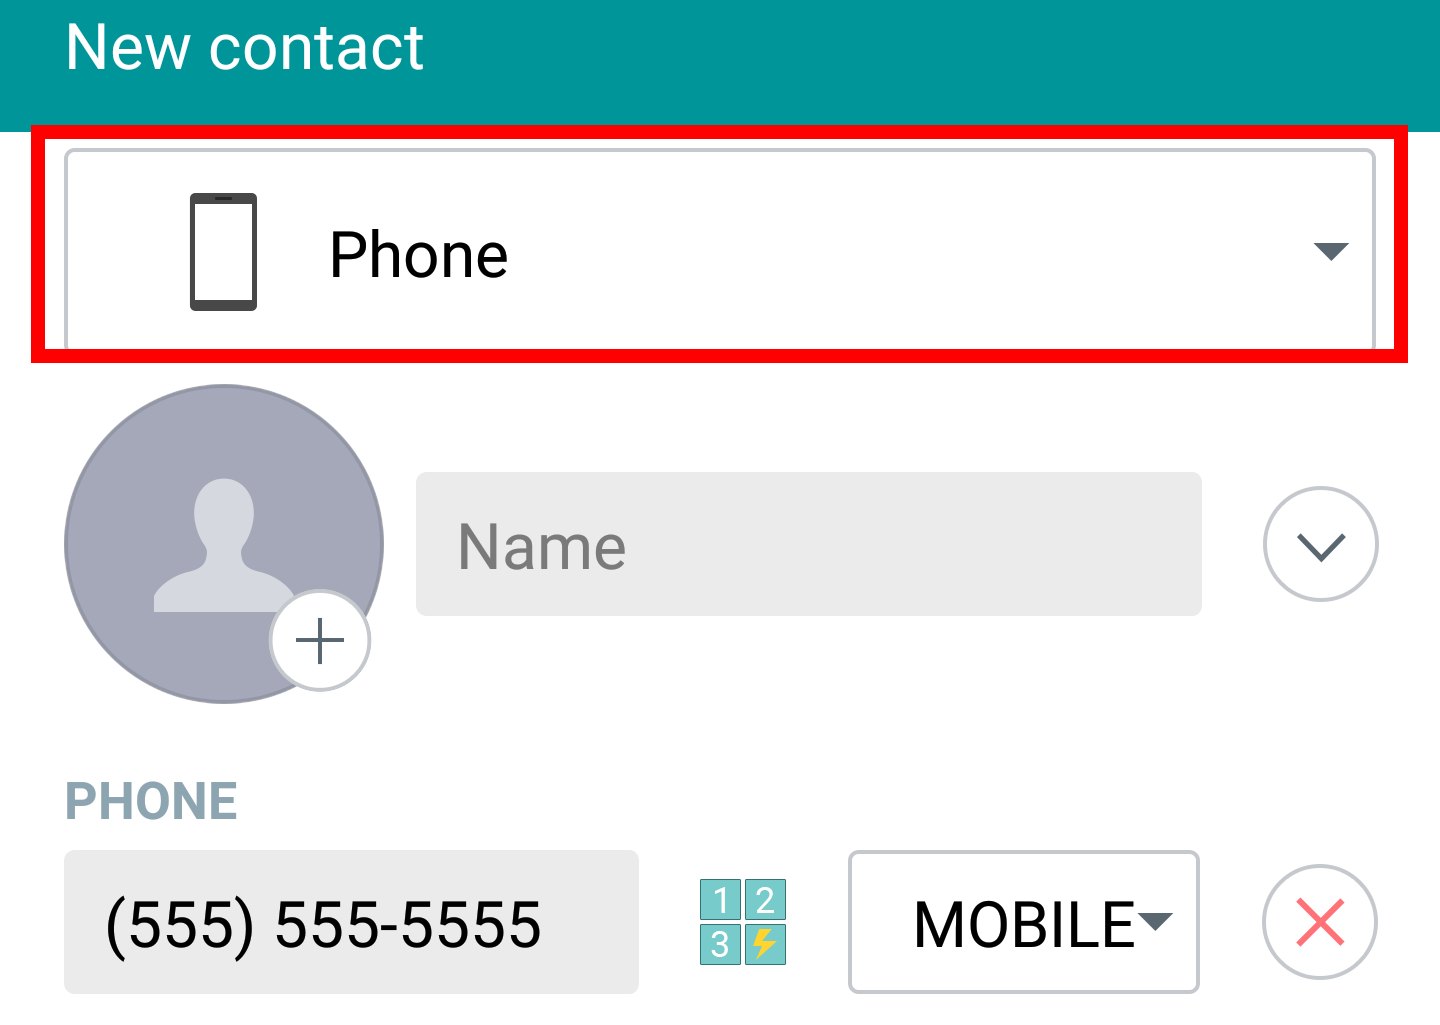 LG ANDROID CONTACTS | LG USA Support